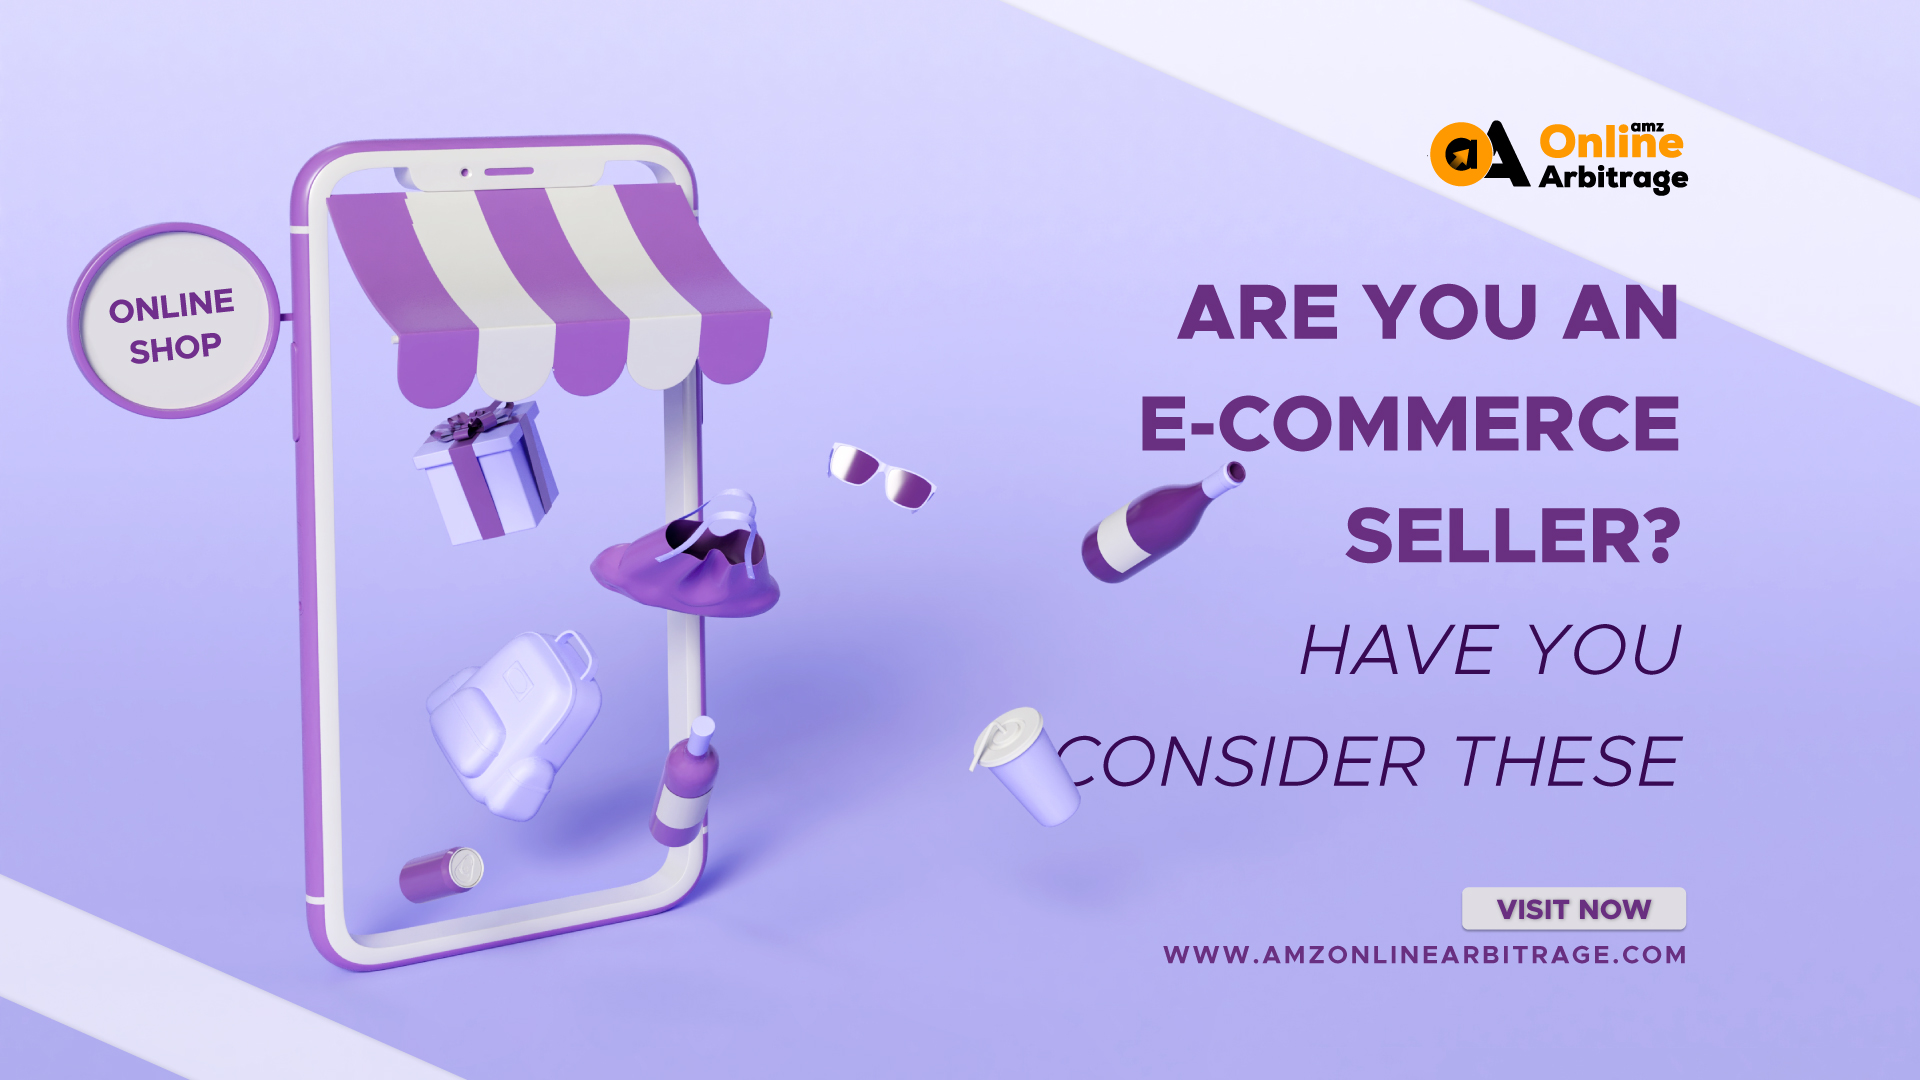 ARE YOU AN E-COMMERCE SELLER? HAVE YOU CONSIDER THESE